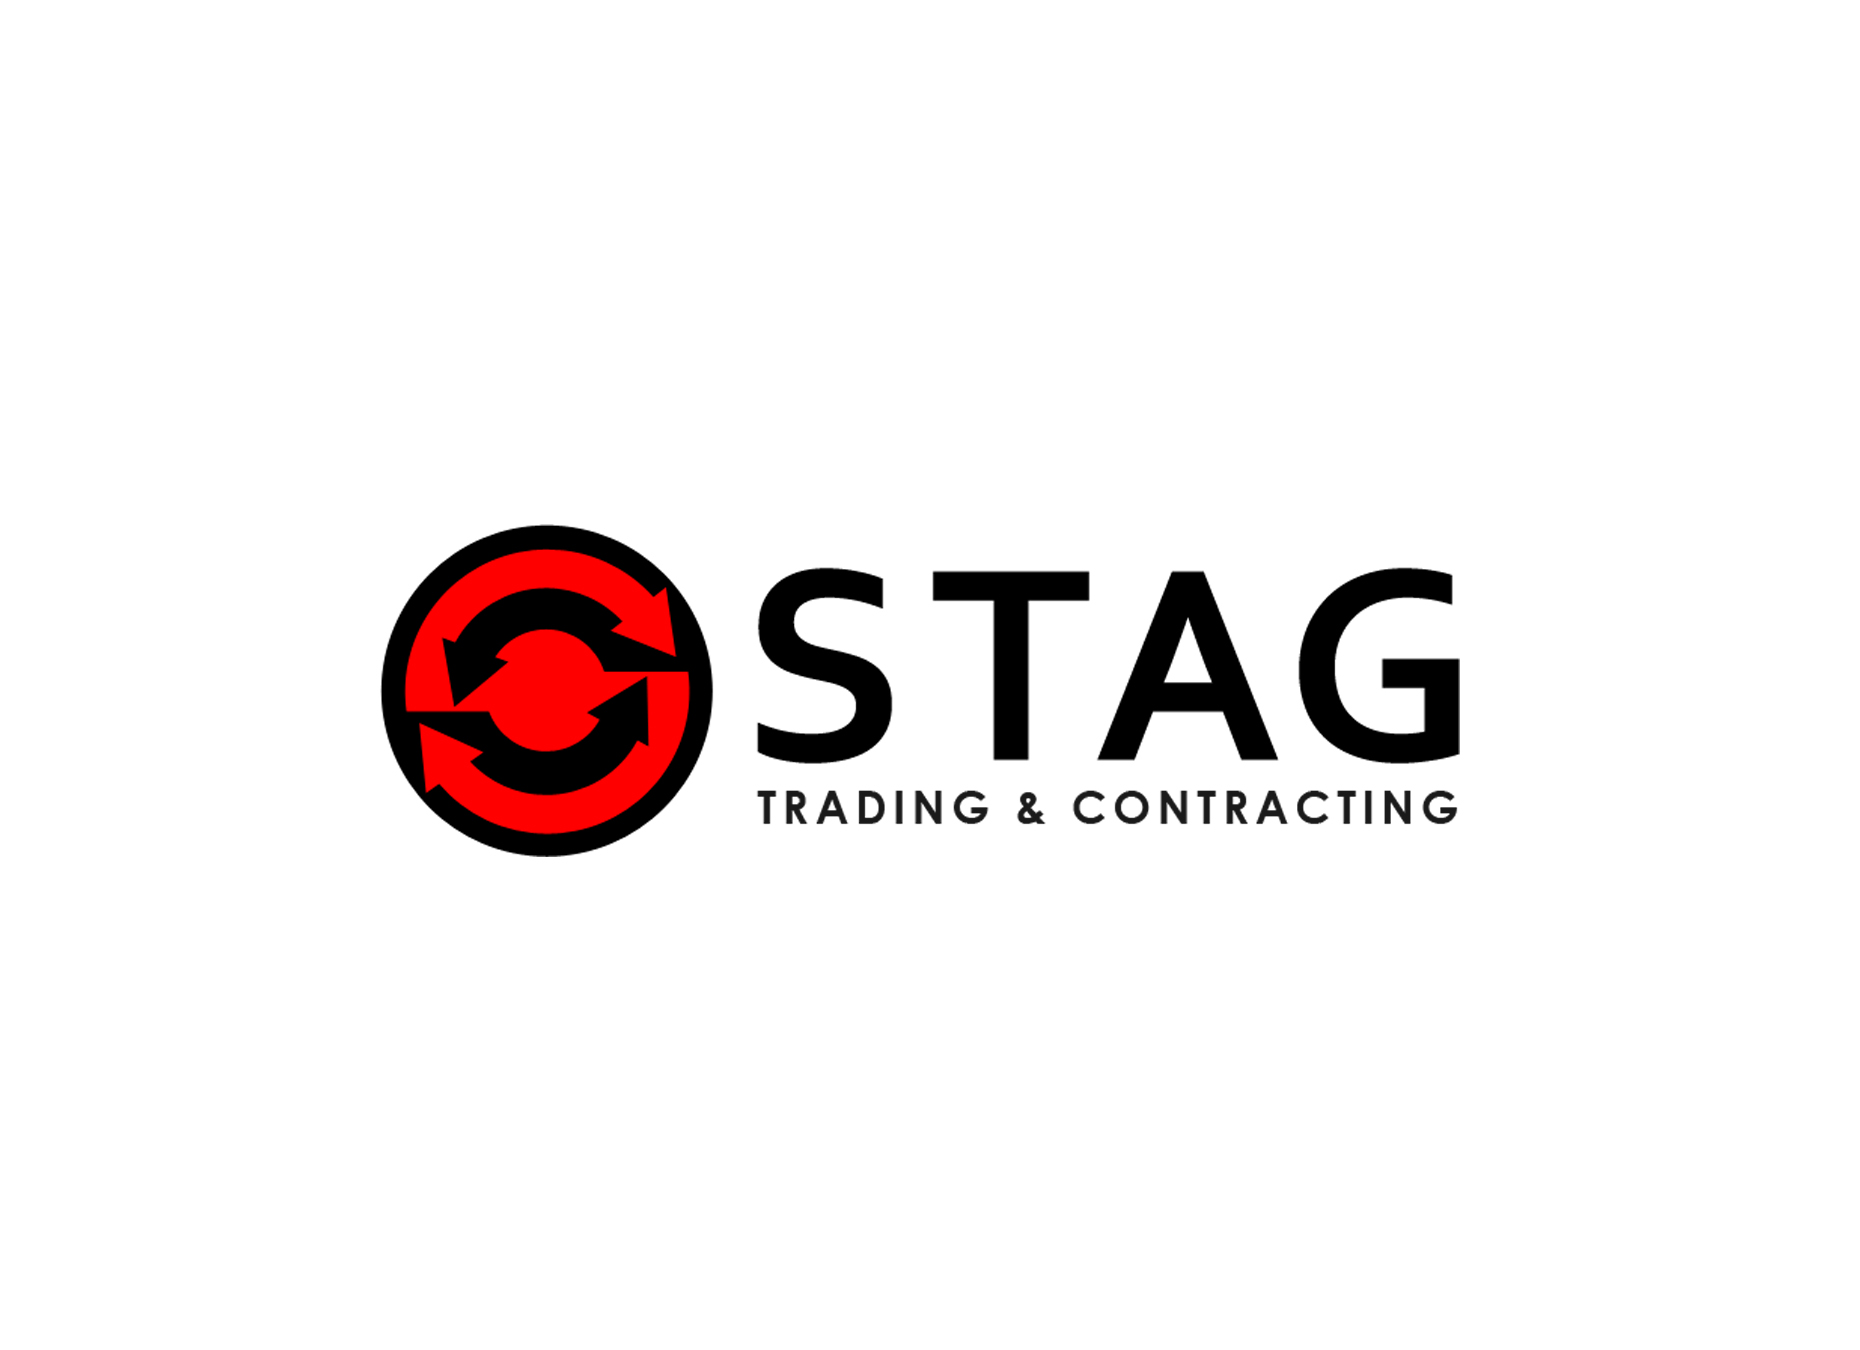 Logo Design by omARTist - Entry No. 298 in the Logo Design Contest Captivating Logo Design for STAG Trading & Contracting.